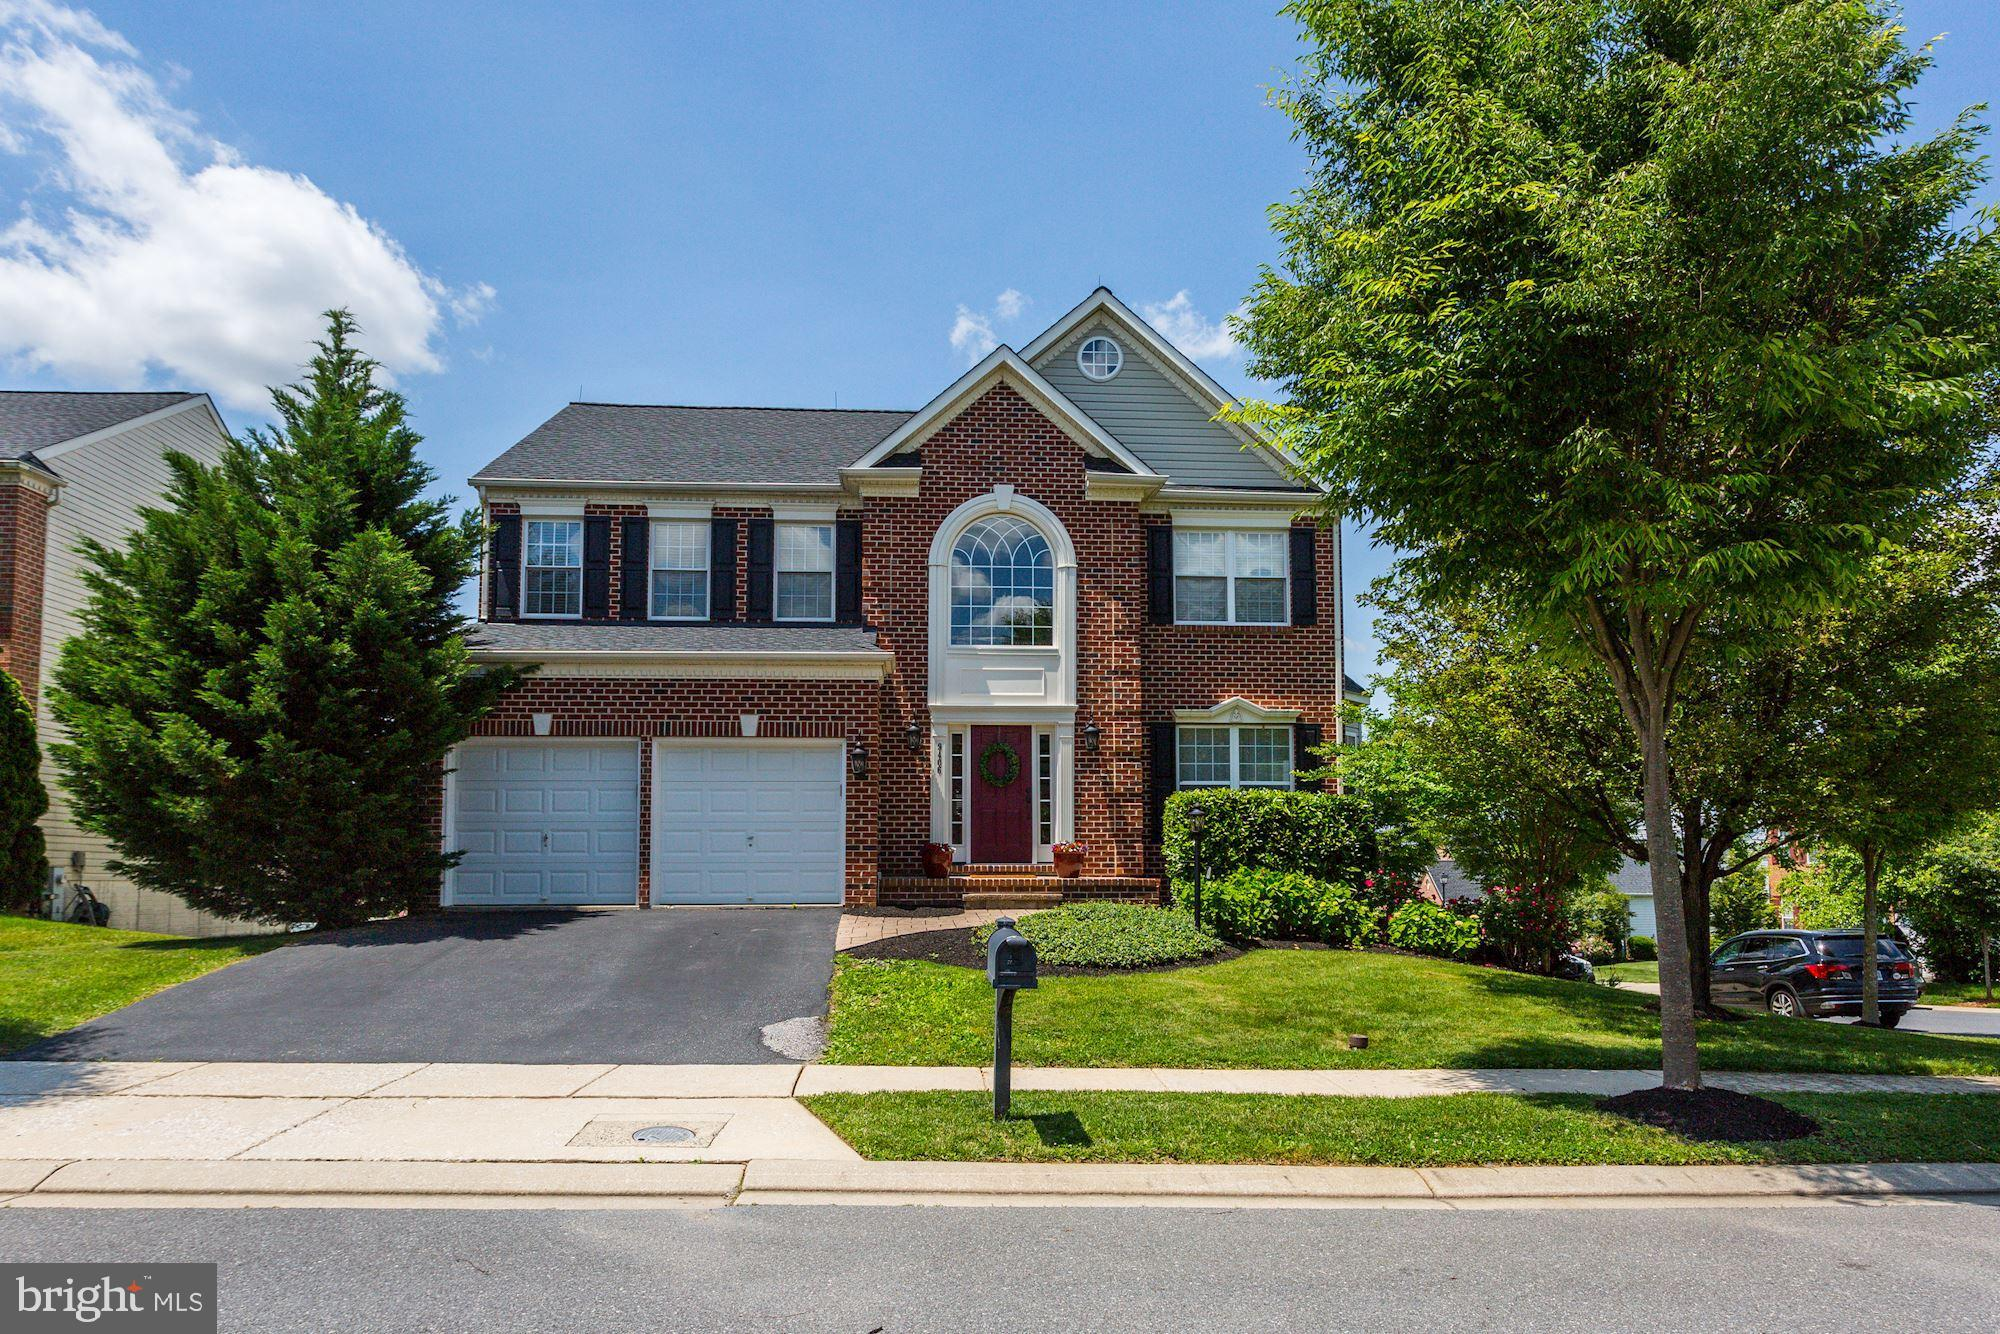 9406 HAYLOFT DRIVE, PERRY HALL, MD 21128